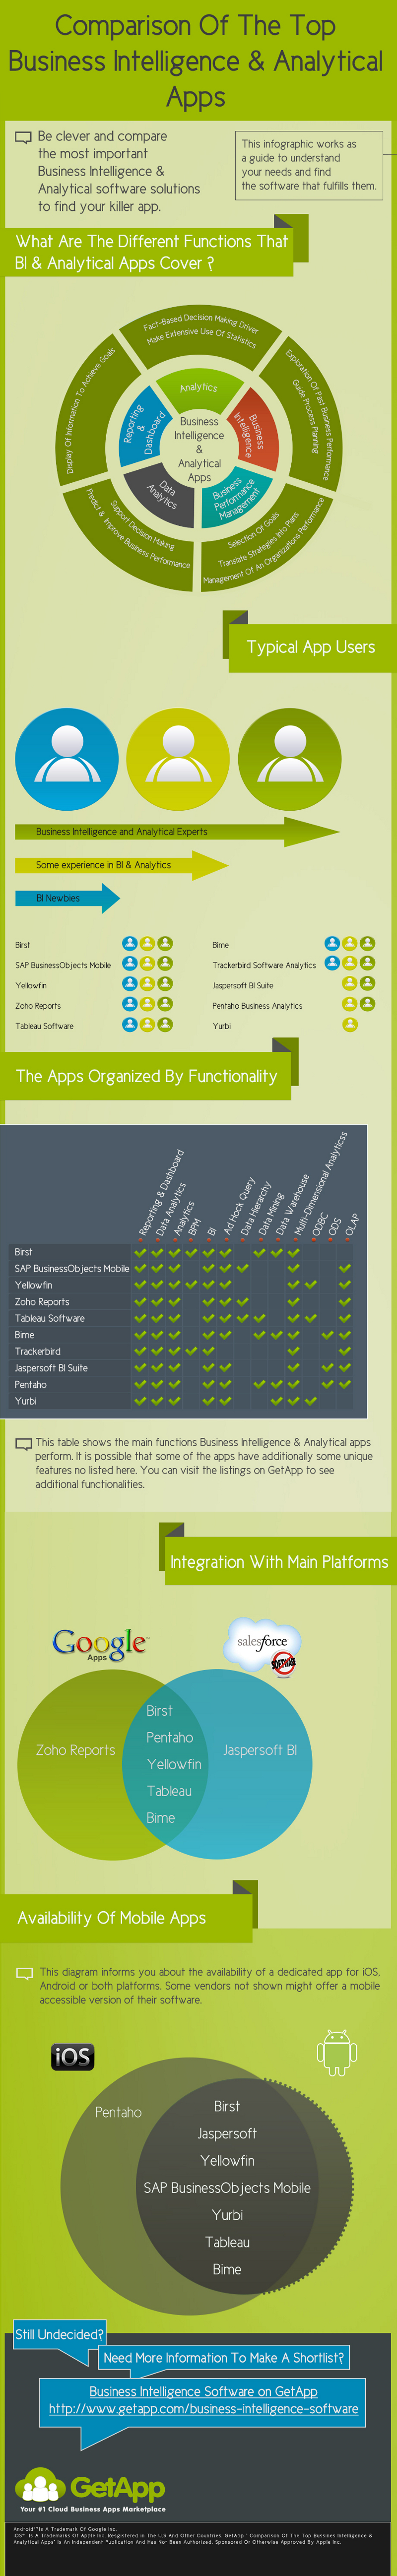 Business-Intelligence-Apps